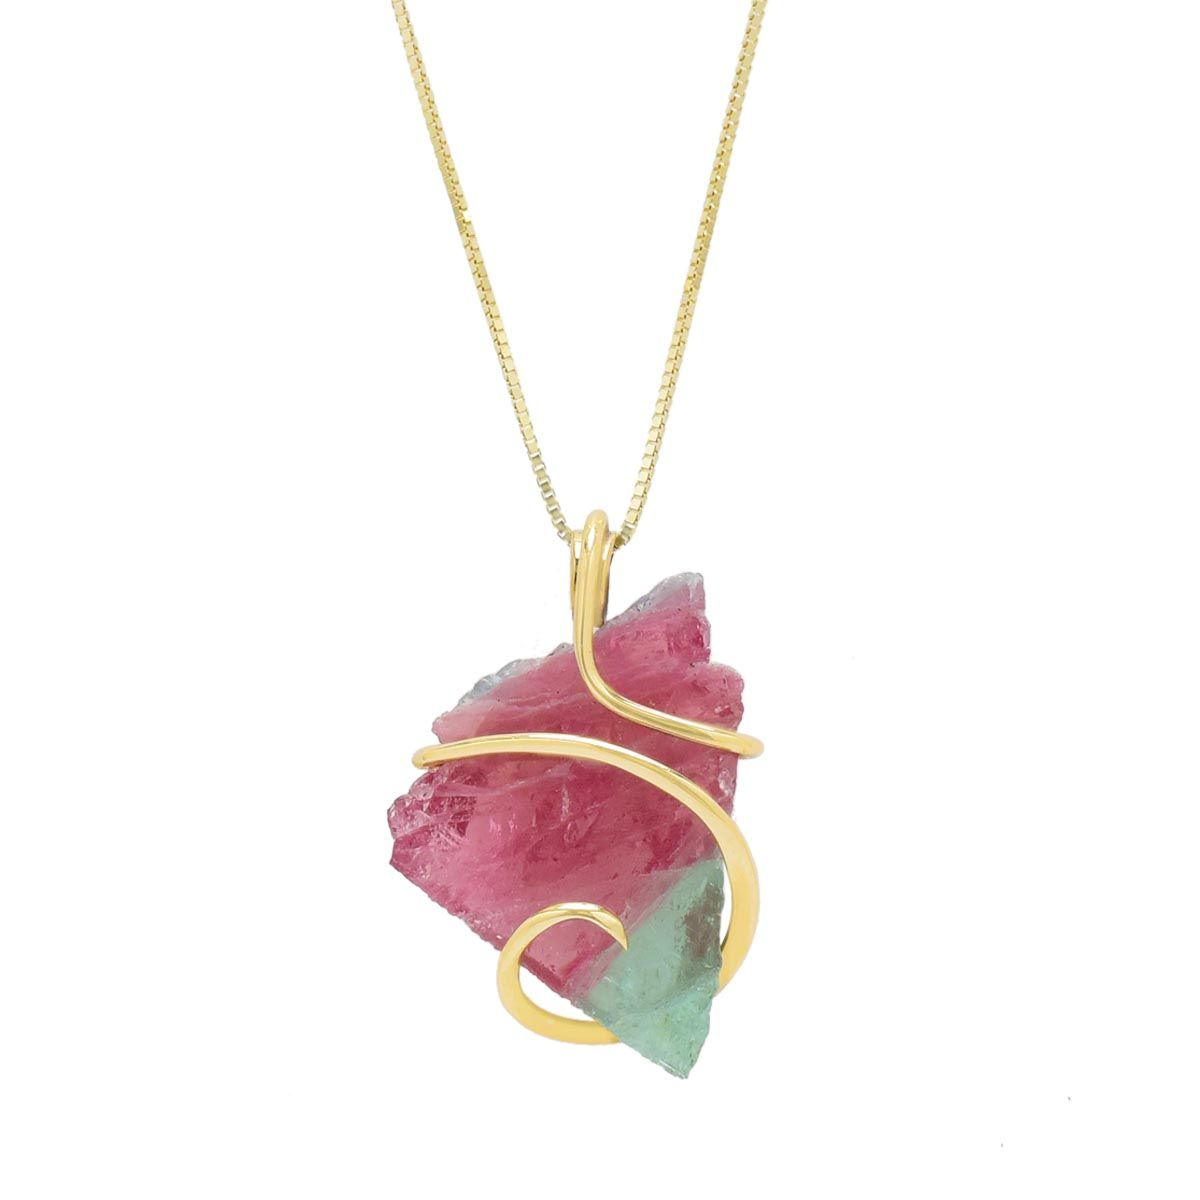 Maine Bicolor Tourmaline Necklace in 14kt Yellow Gold